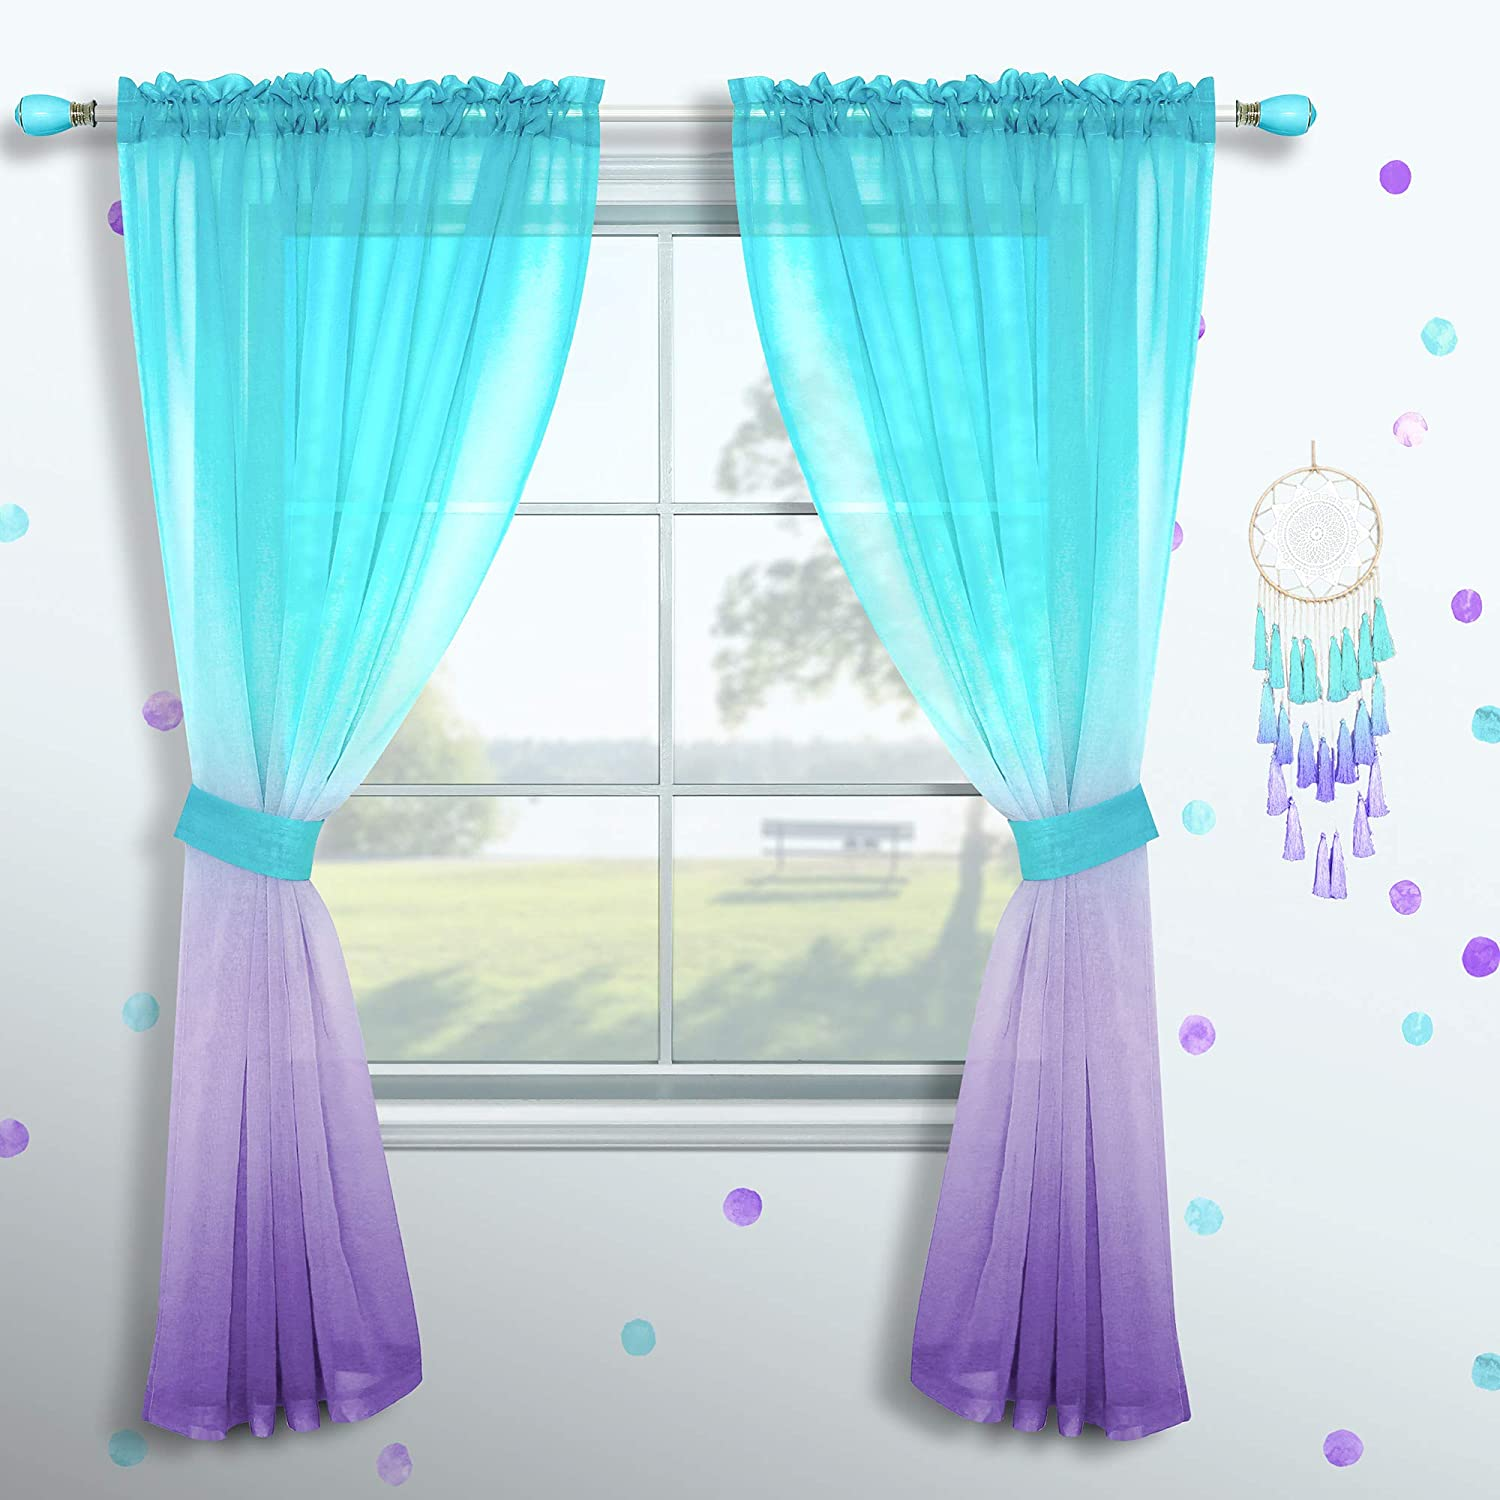 Amazon Com Girls Curtains For Bedroom Decor Single Curtain Panel Pole Pocket Window Sheer Drapes Pastel Teal Purple Ombre Curtains For Kids Room Teen Princess Decorations Set Lilac Turquoise 52 X 63 Inch,Kitchenaid Dishwasher Inside